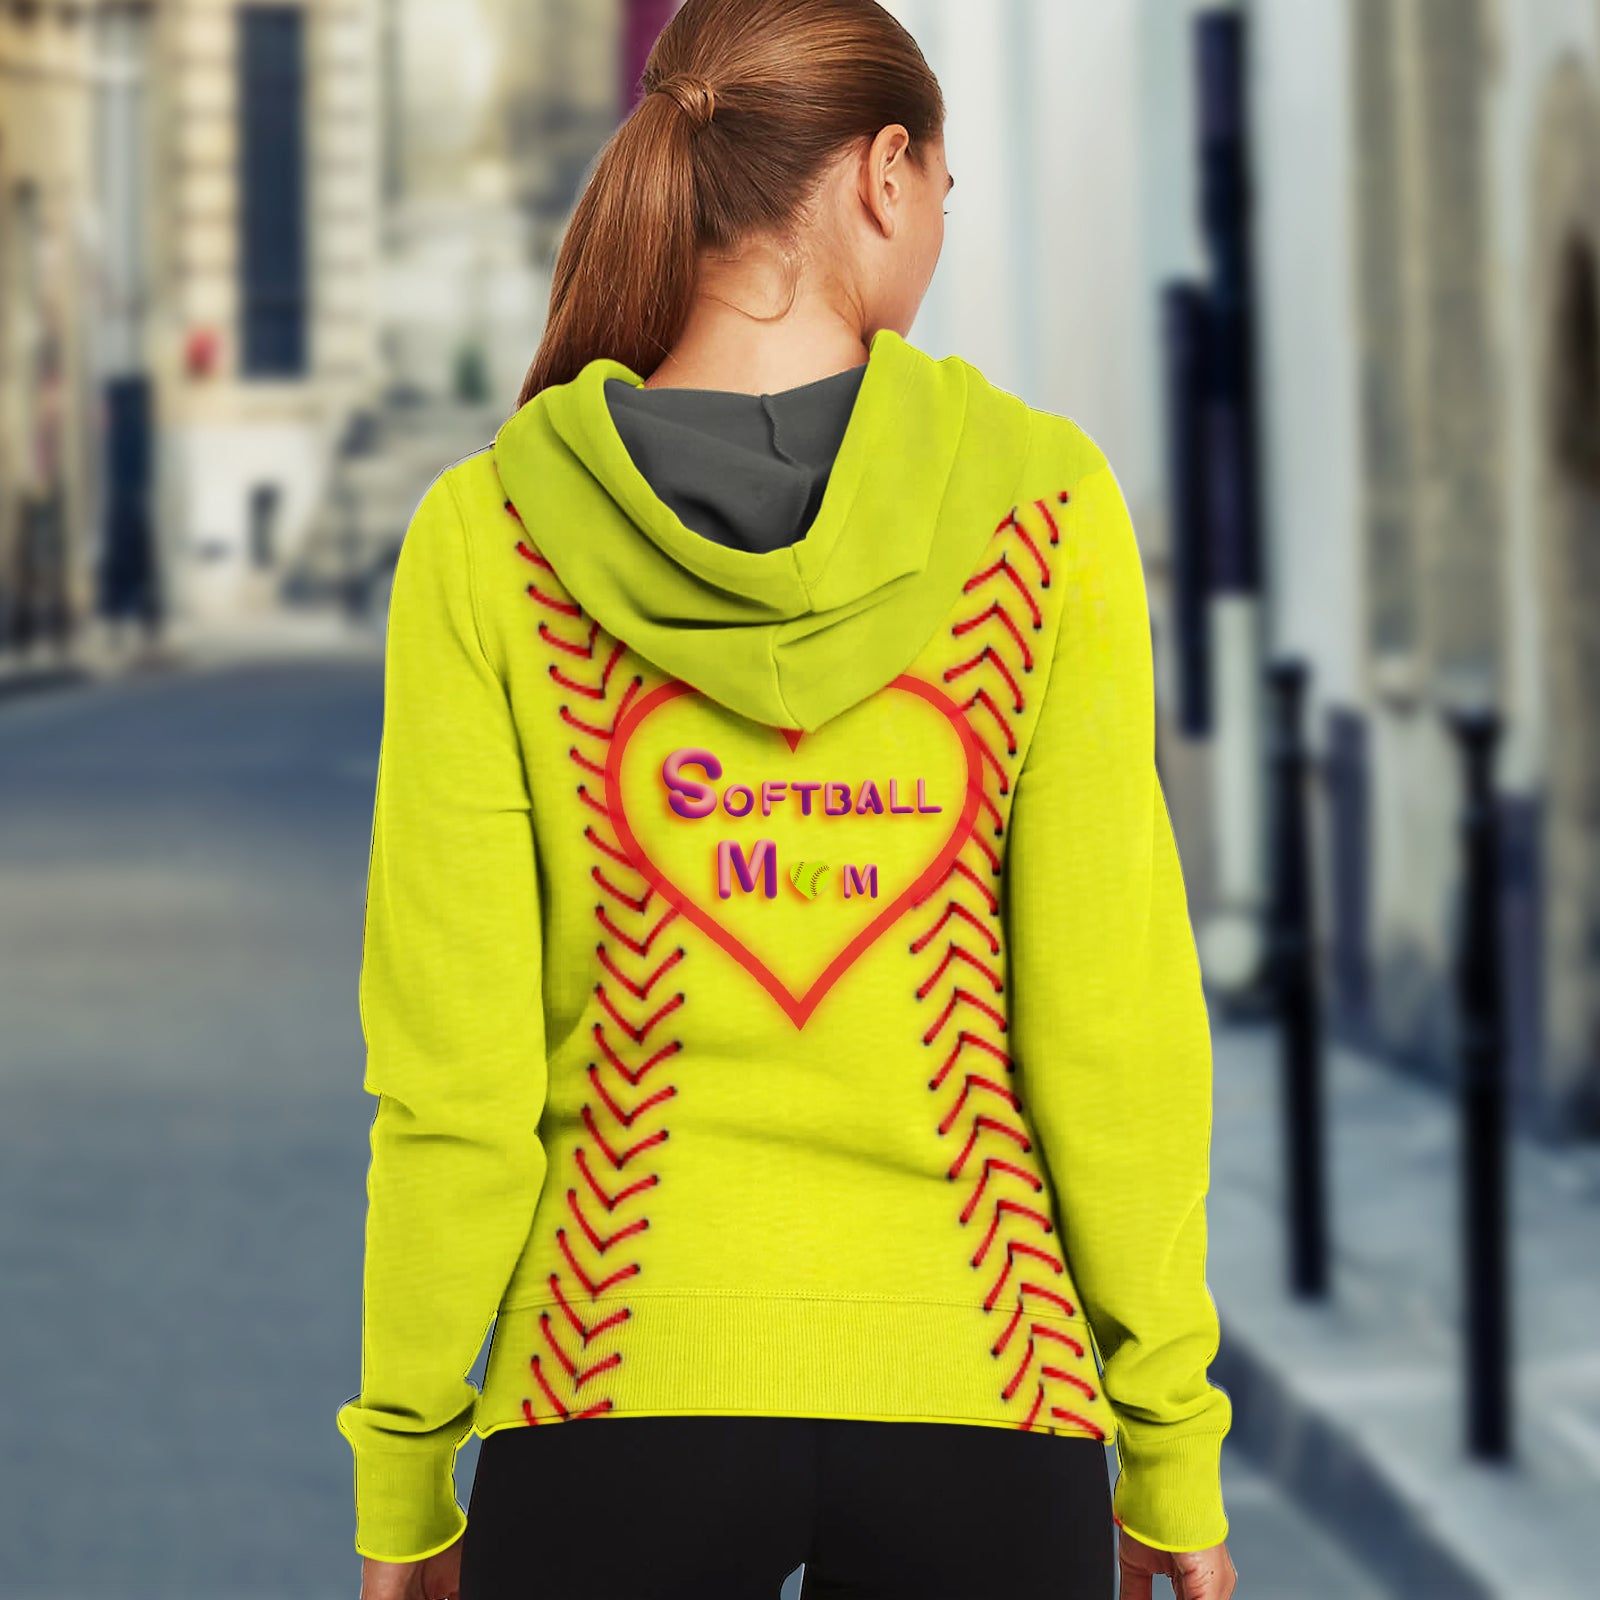 Unisex Hoodie for Softball lovers - Softball Mom Hoodies - designfullprint